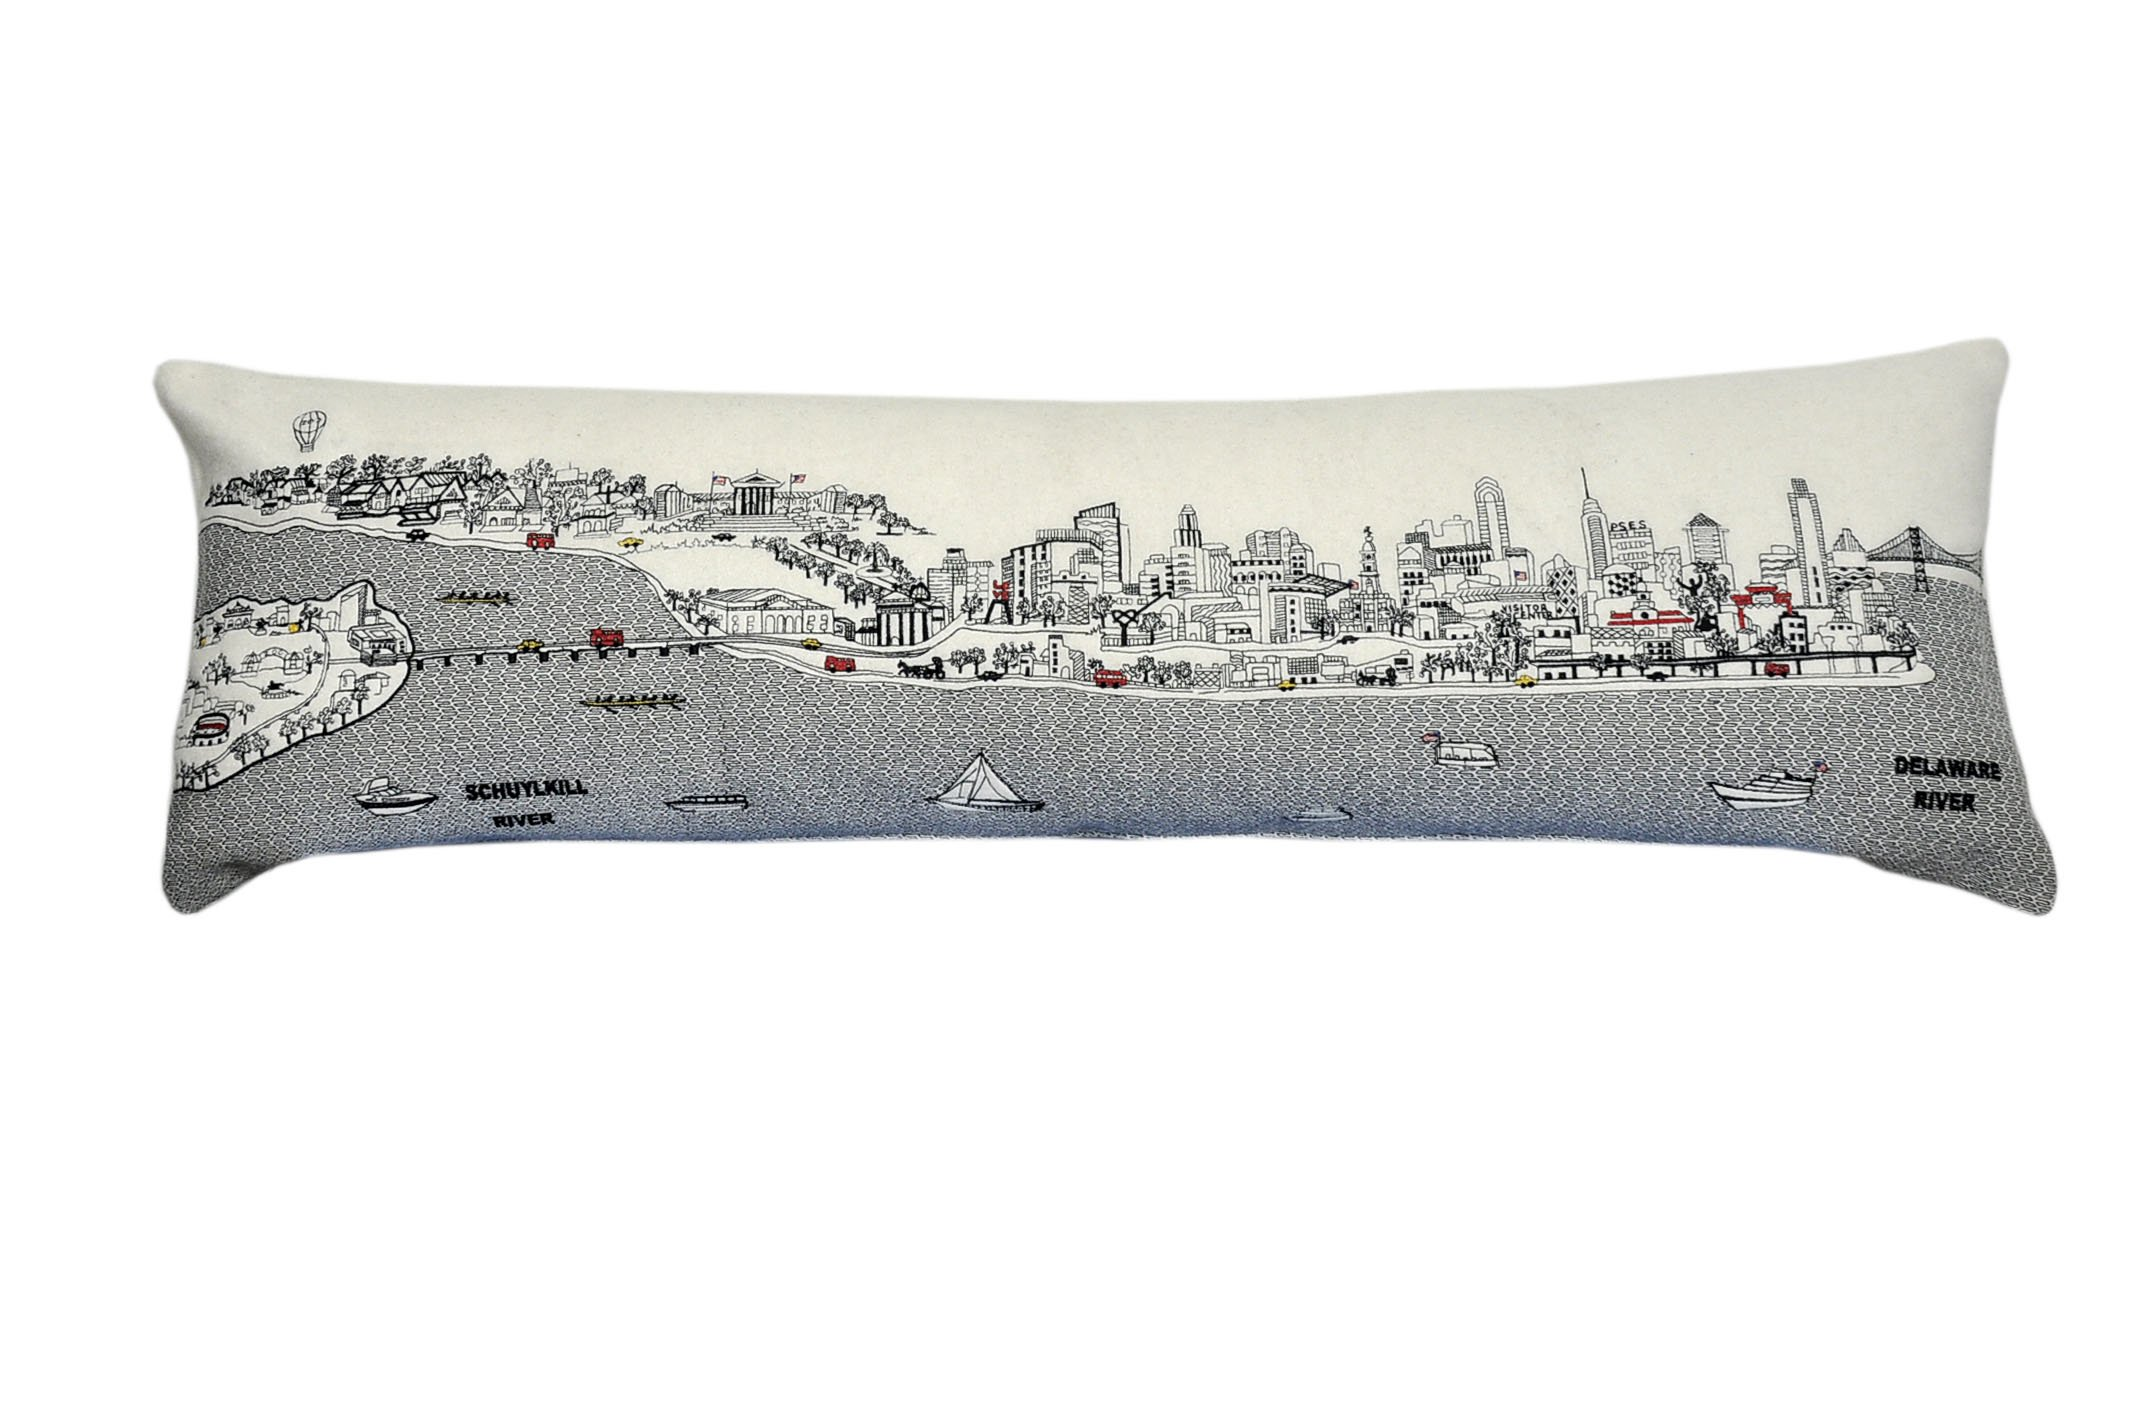 Beyond Cushions Polyester Throw Pillows Beyond Cushions Philadelphia Daytime Skyline King Size Embroidered Accent Pillow 46 X 14 X 5 Inches Off-White Model # PHI-DAY-KNG